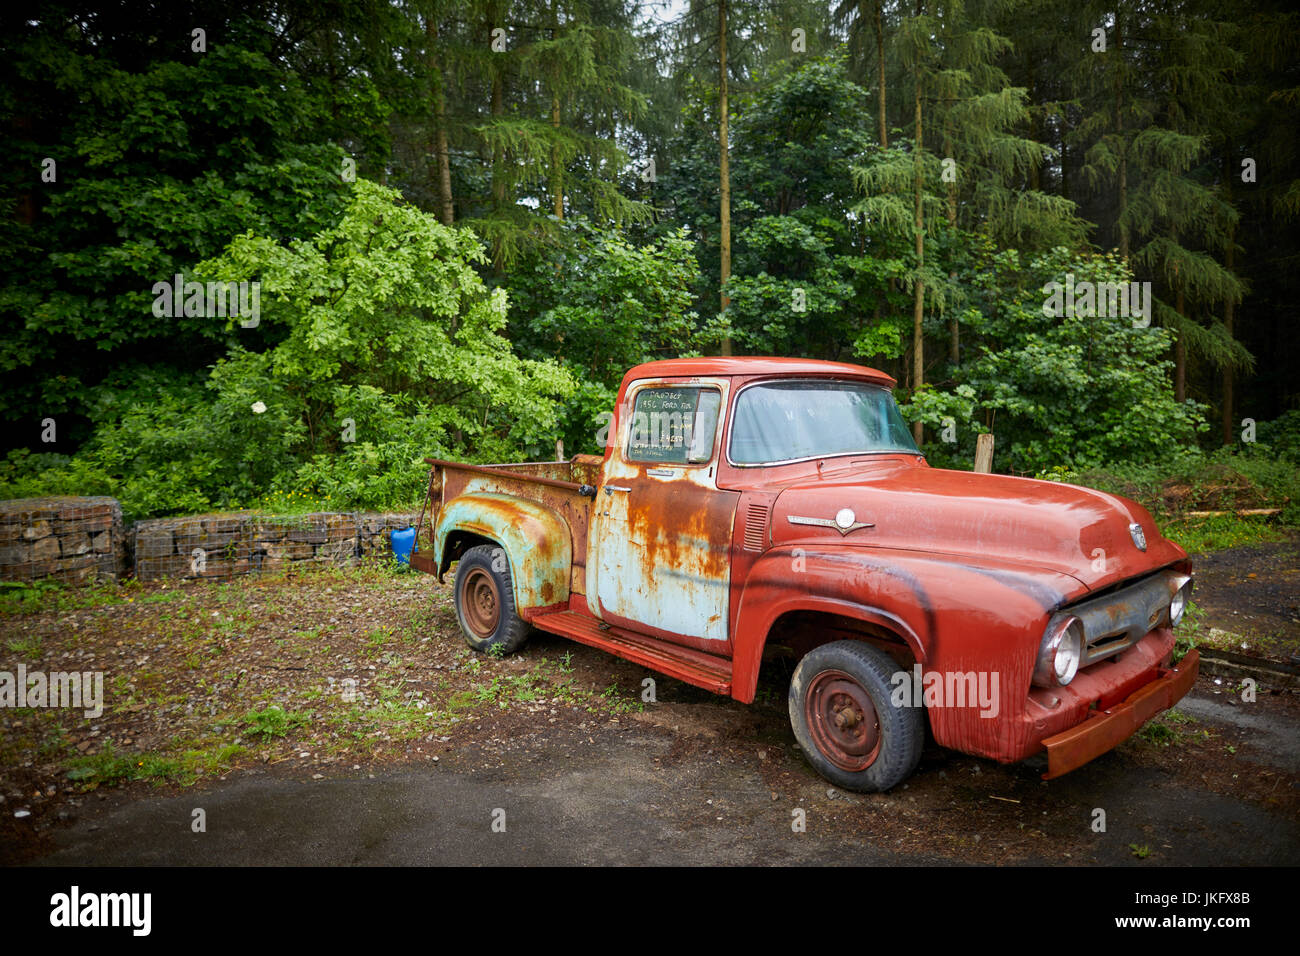 Old American Classic Cars In Need Of Restoration For Sale Near